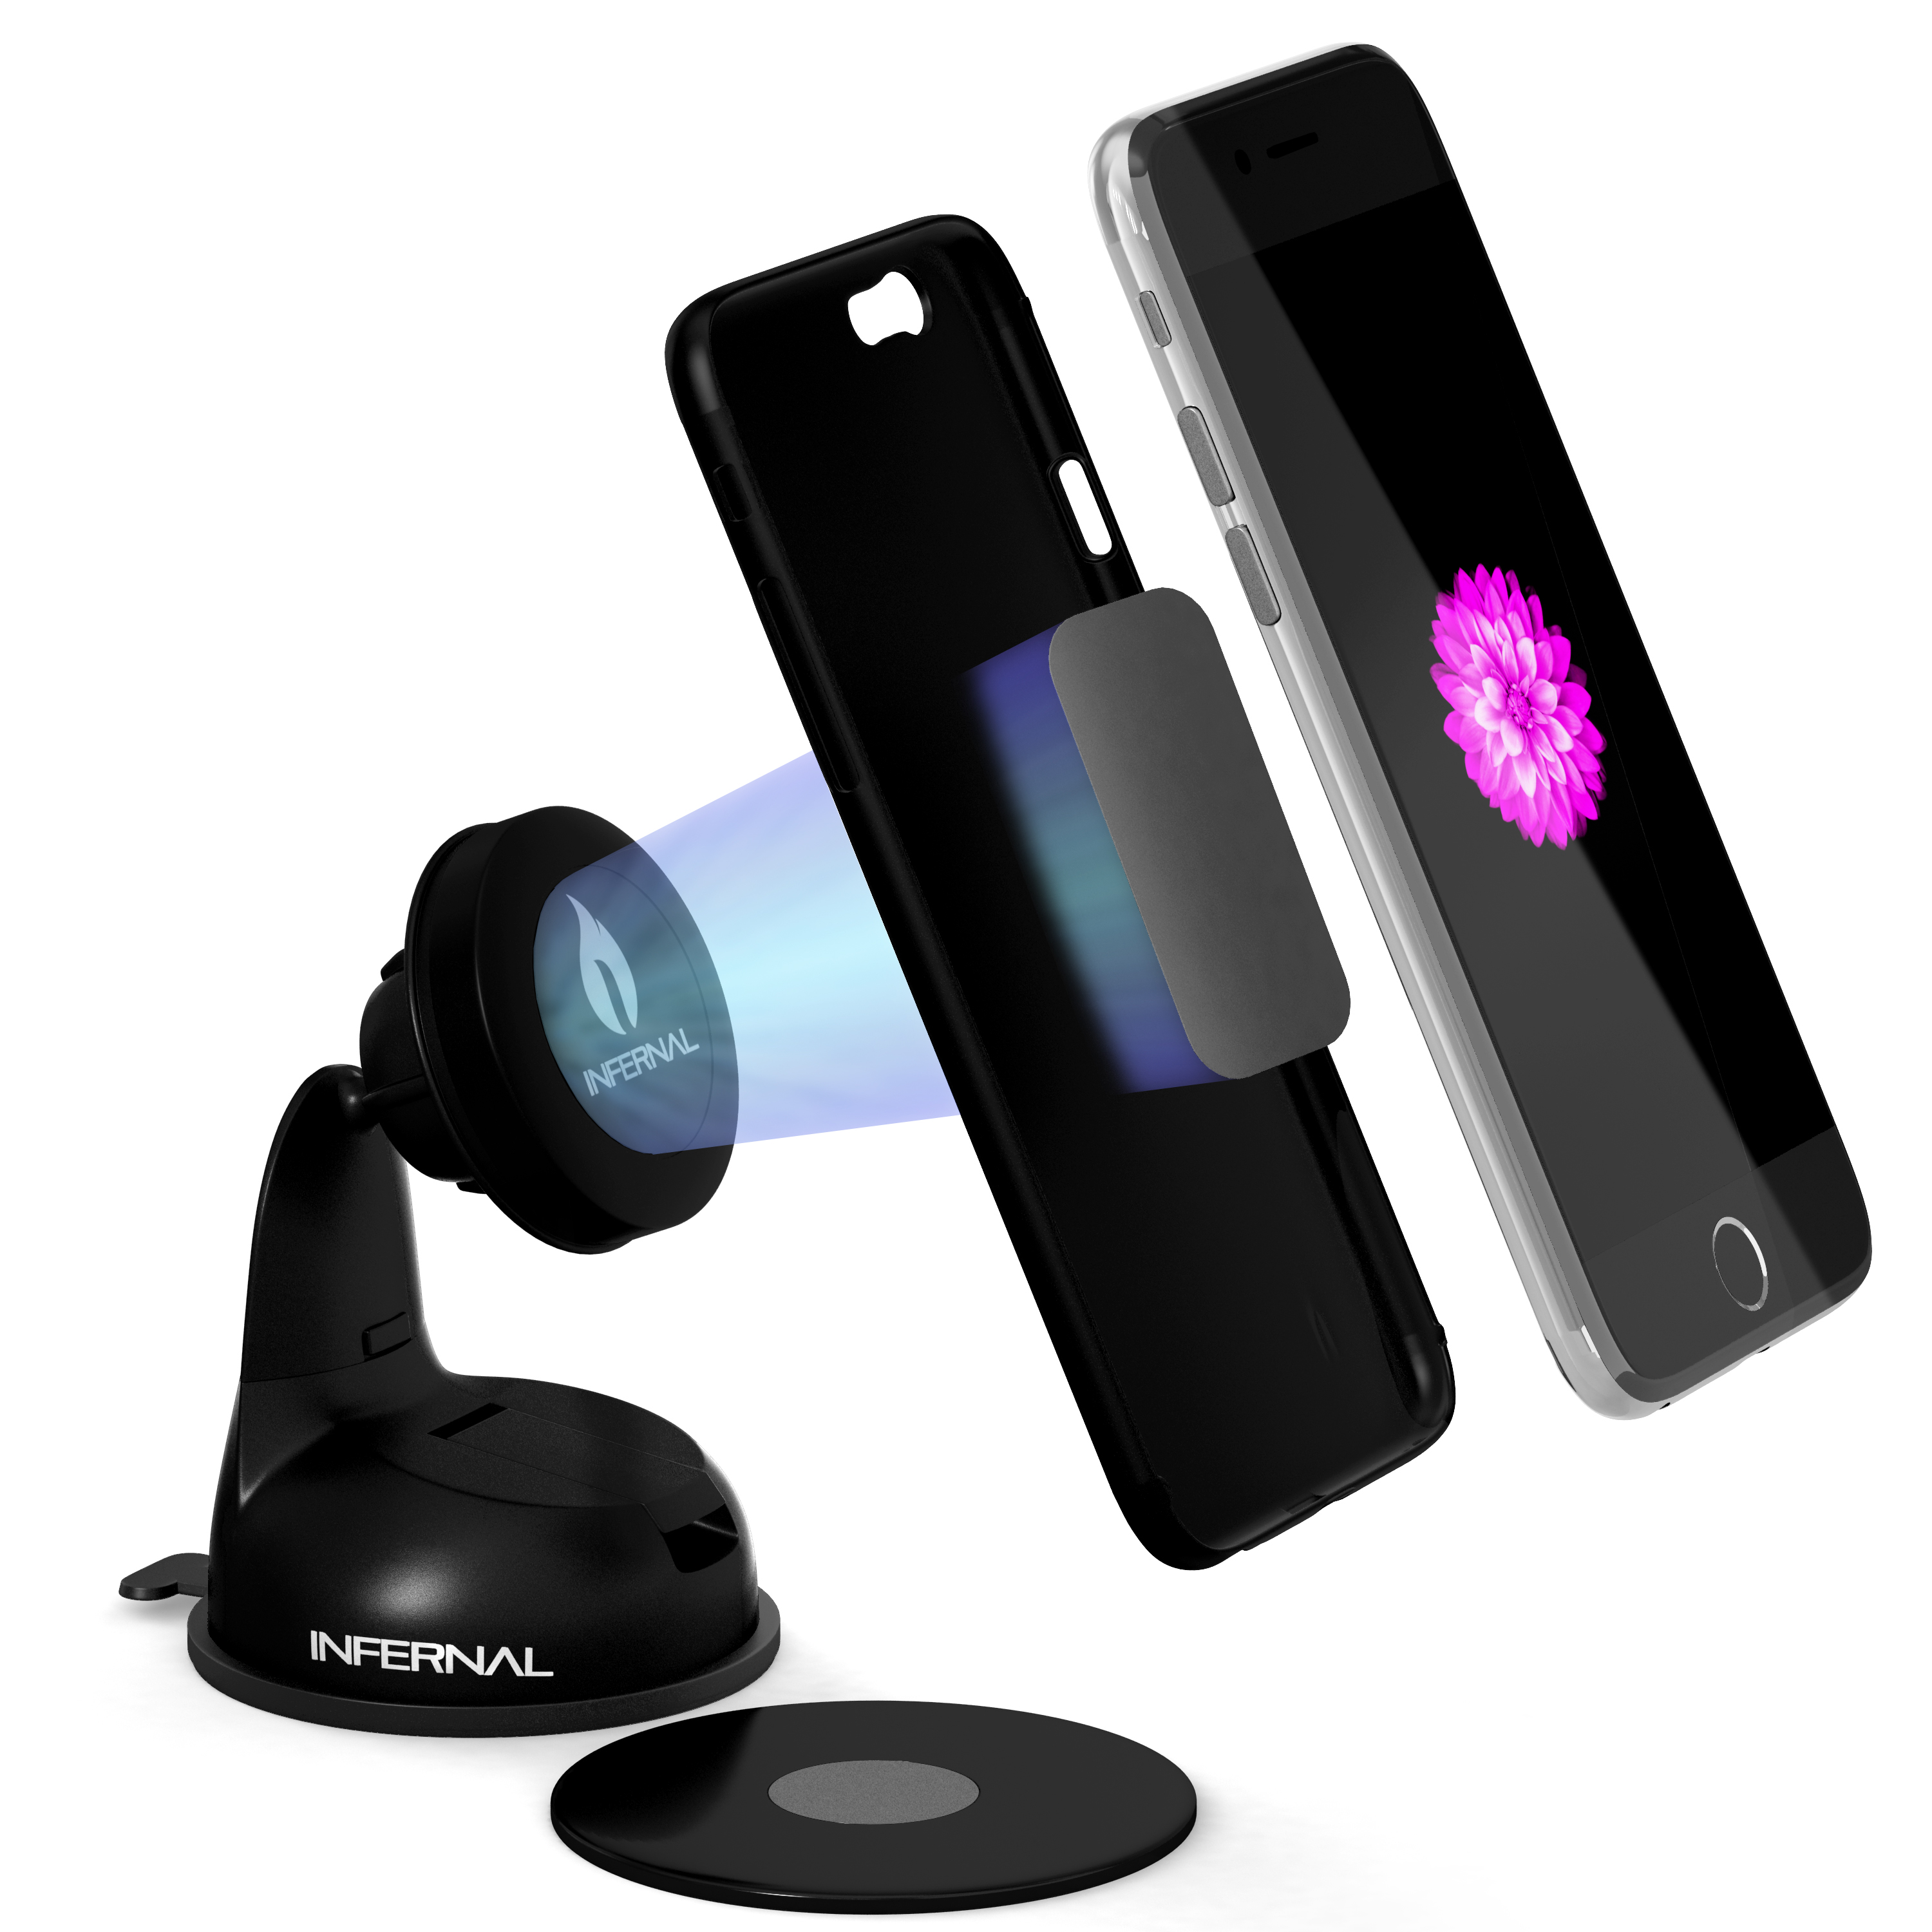 Infernal Innovations Magnetic Phone Mount Review